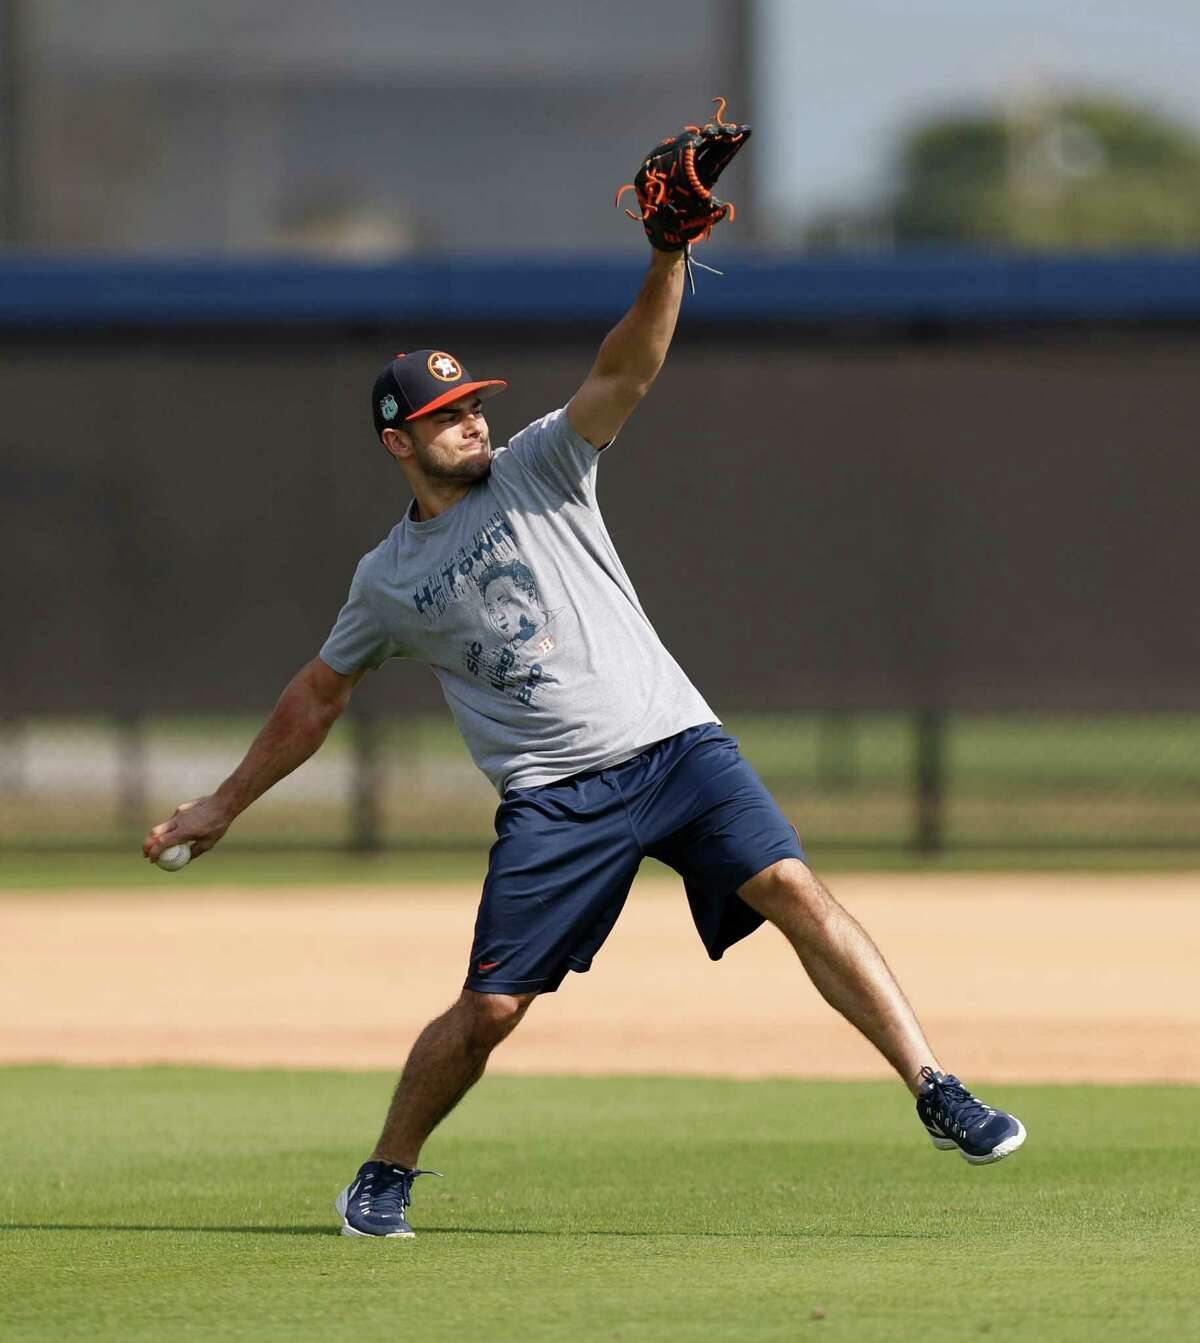 Houston Astros starting pitcher Lance McCullers throws during Astros pitchers and catchers report day at the Astros new spring training facility, The Ballpark of the Palm Beaches, in West Palm Beach, Florida, Tuesday, February 14, 2017. The Astros share the new ballpark with the Washington Nationals.